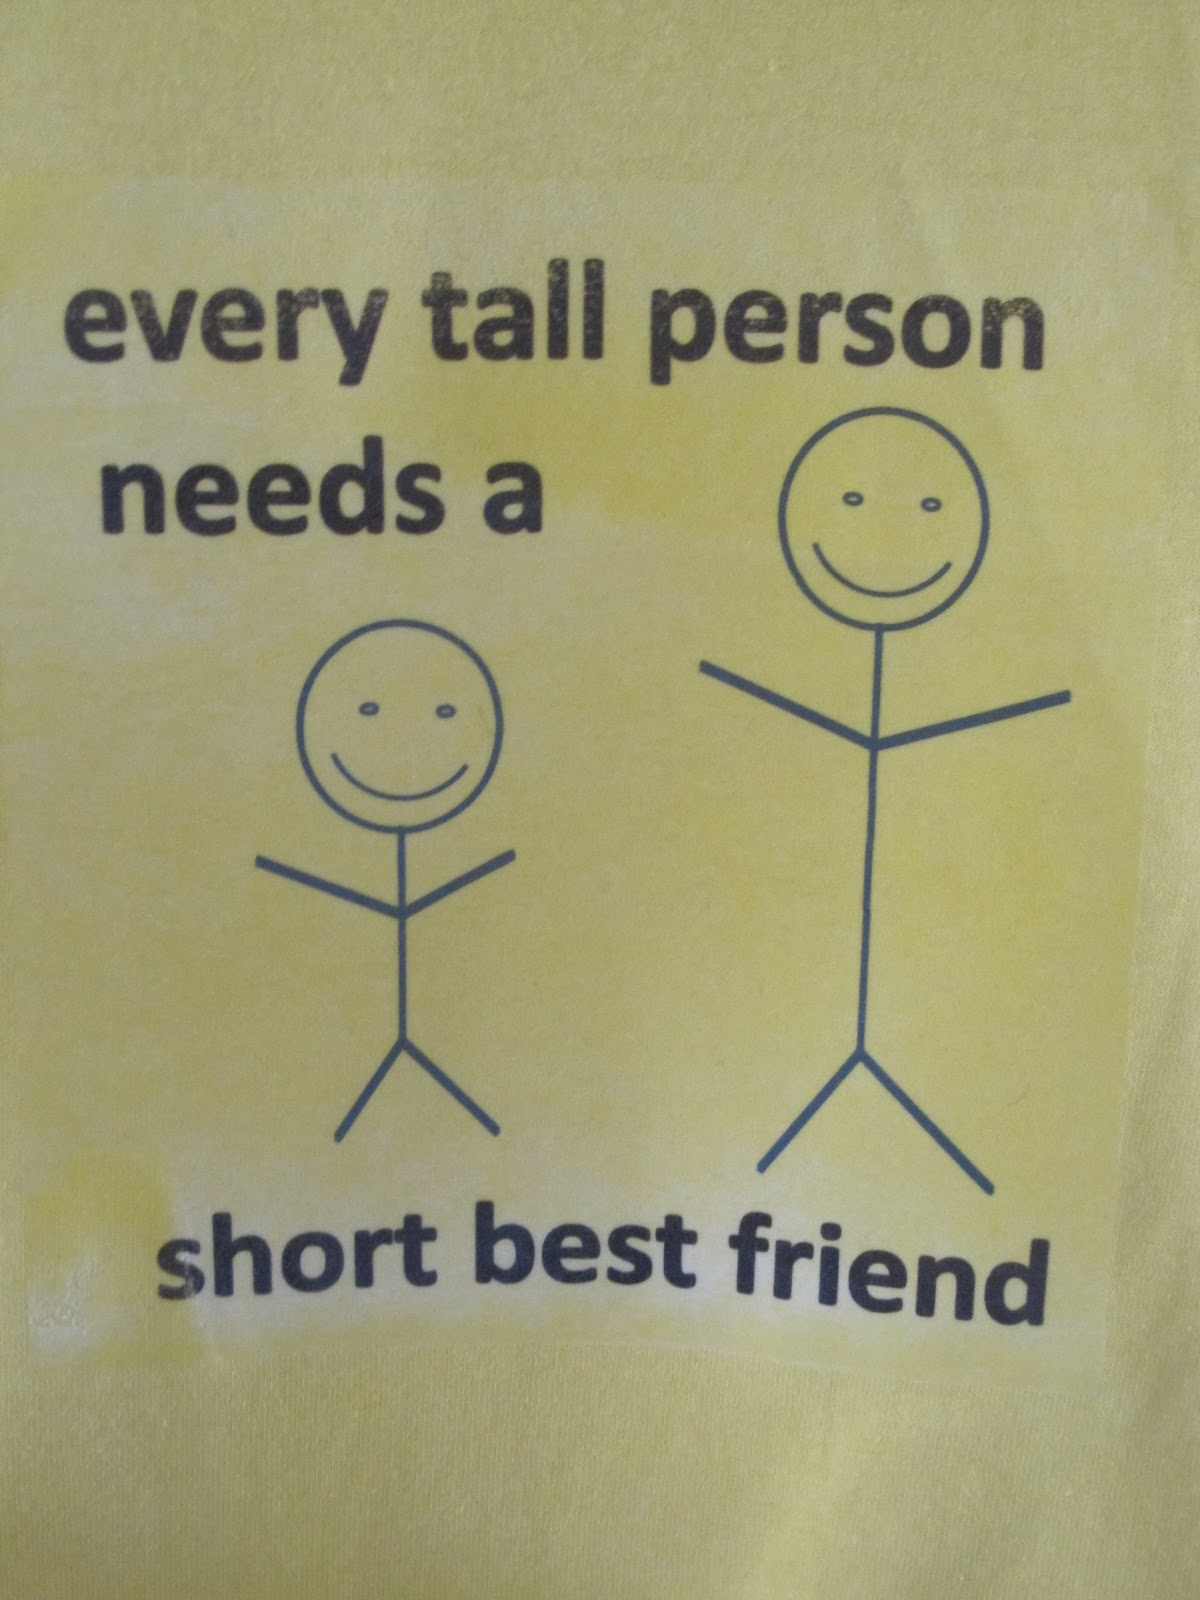 every tall person needs a short best friend.